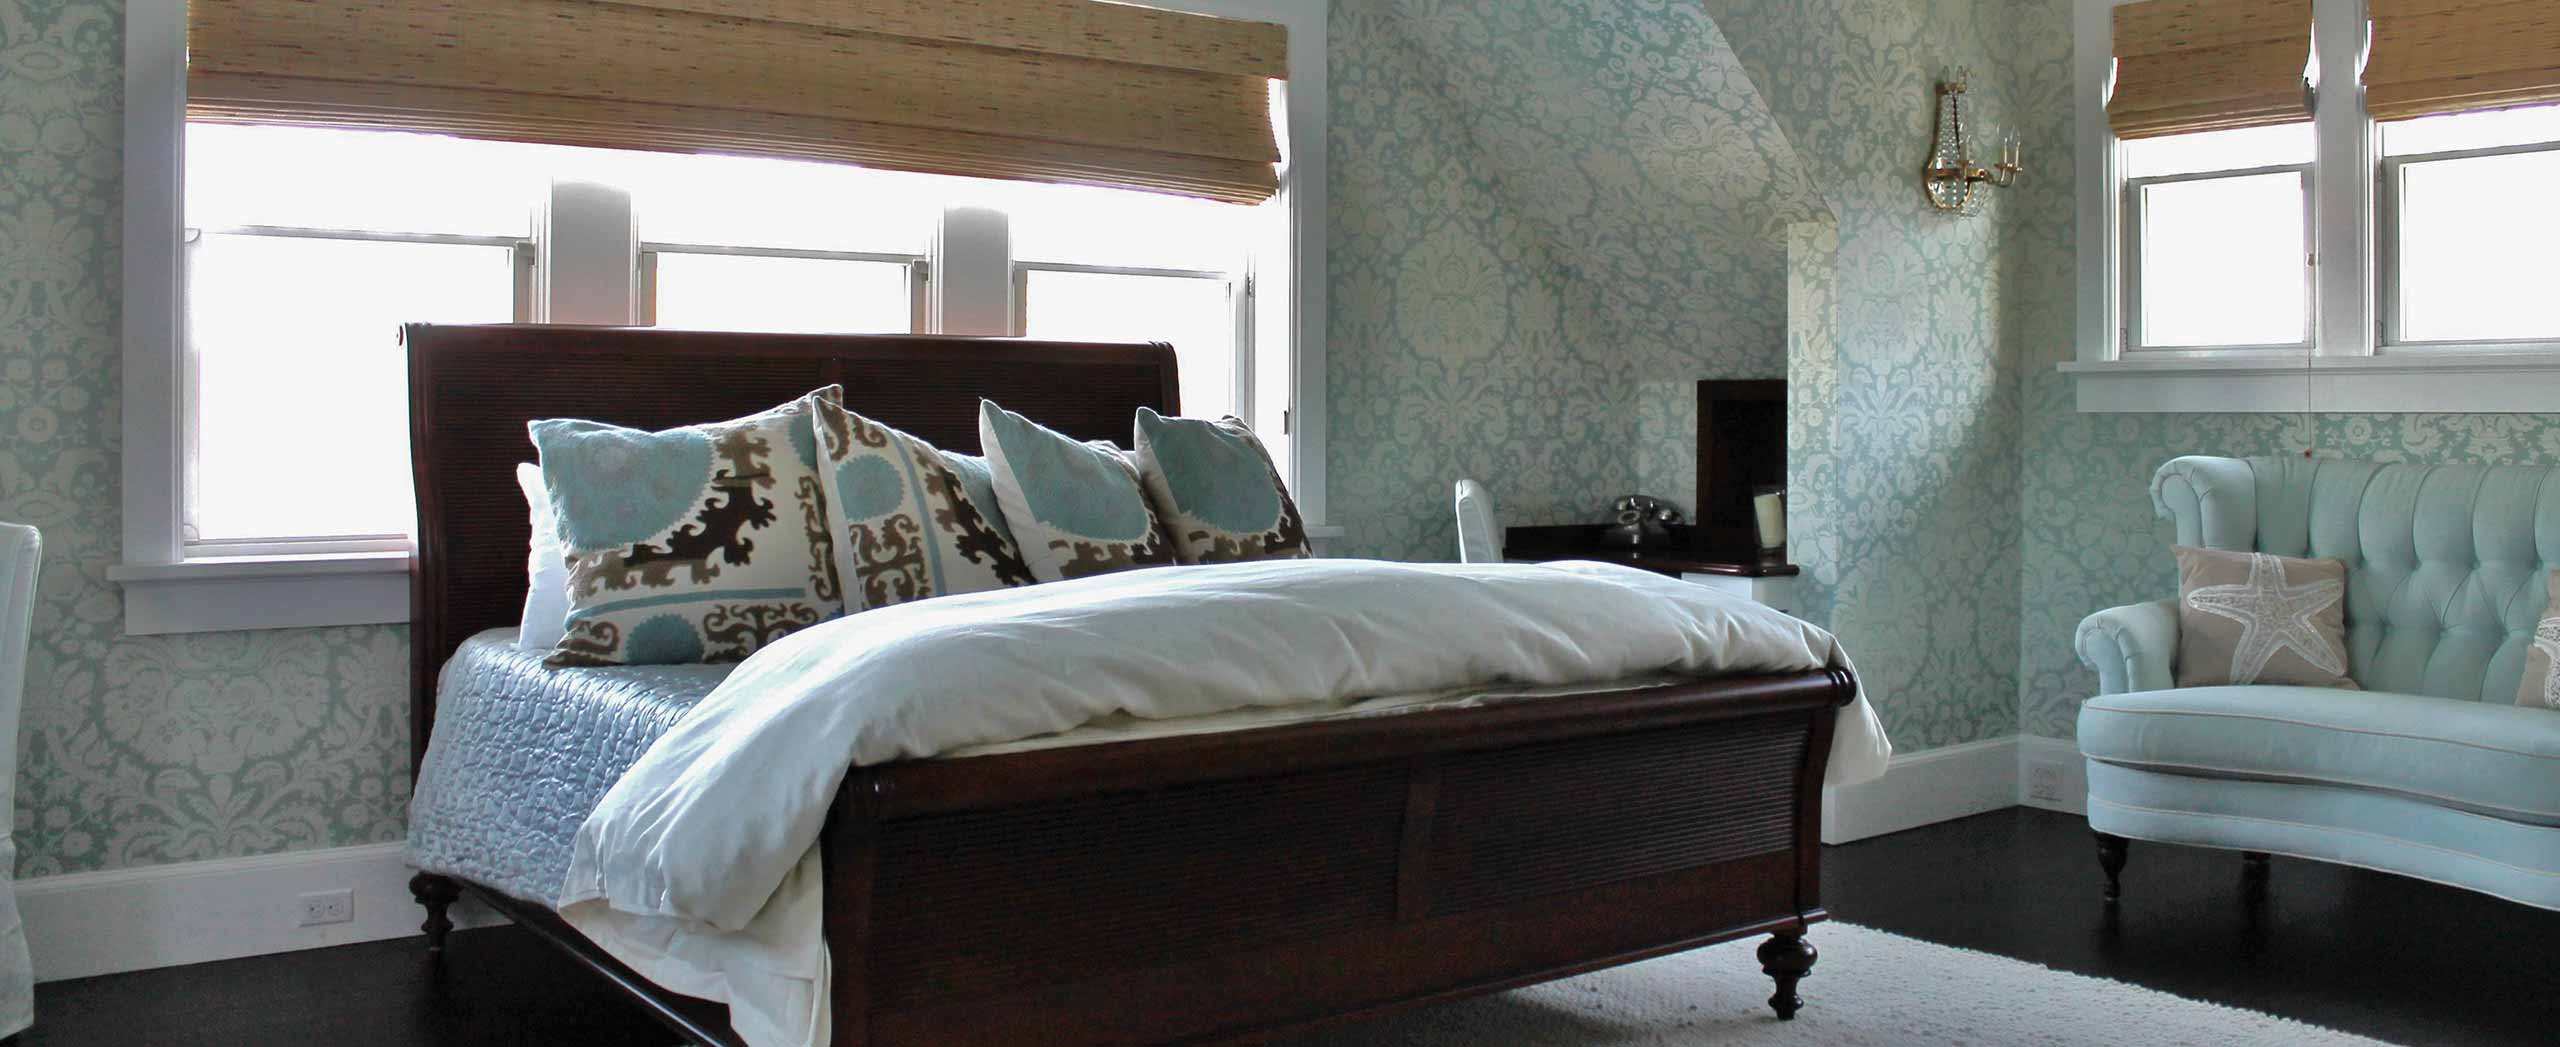 Osterville bedroom remodel